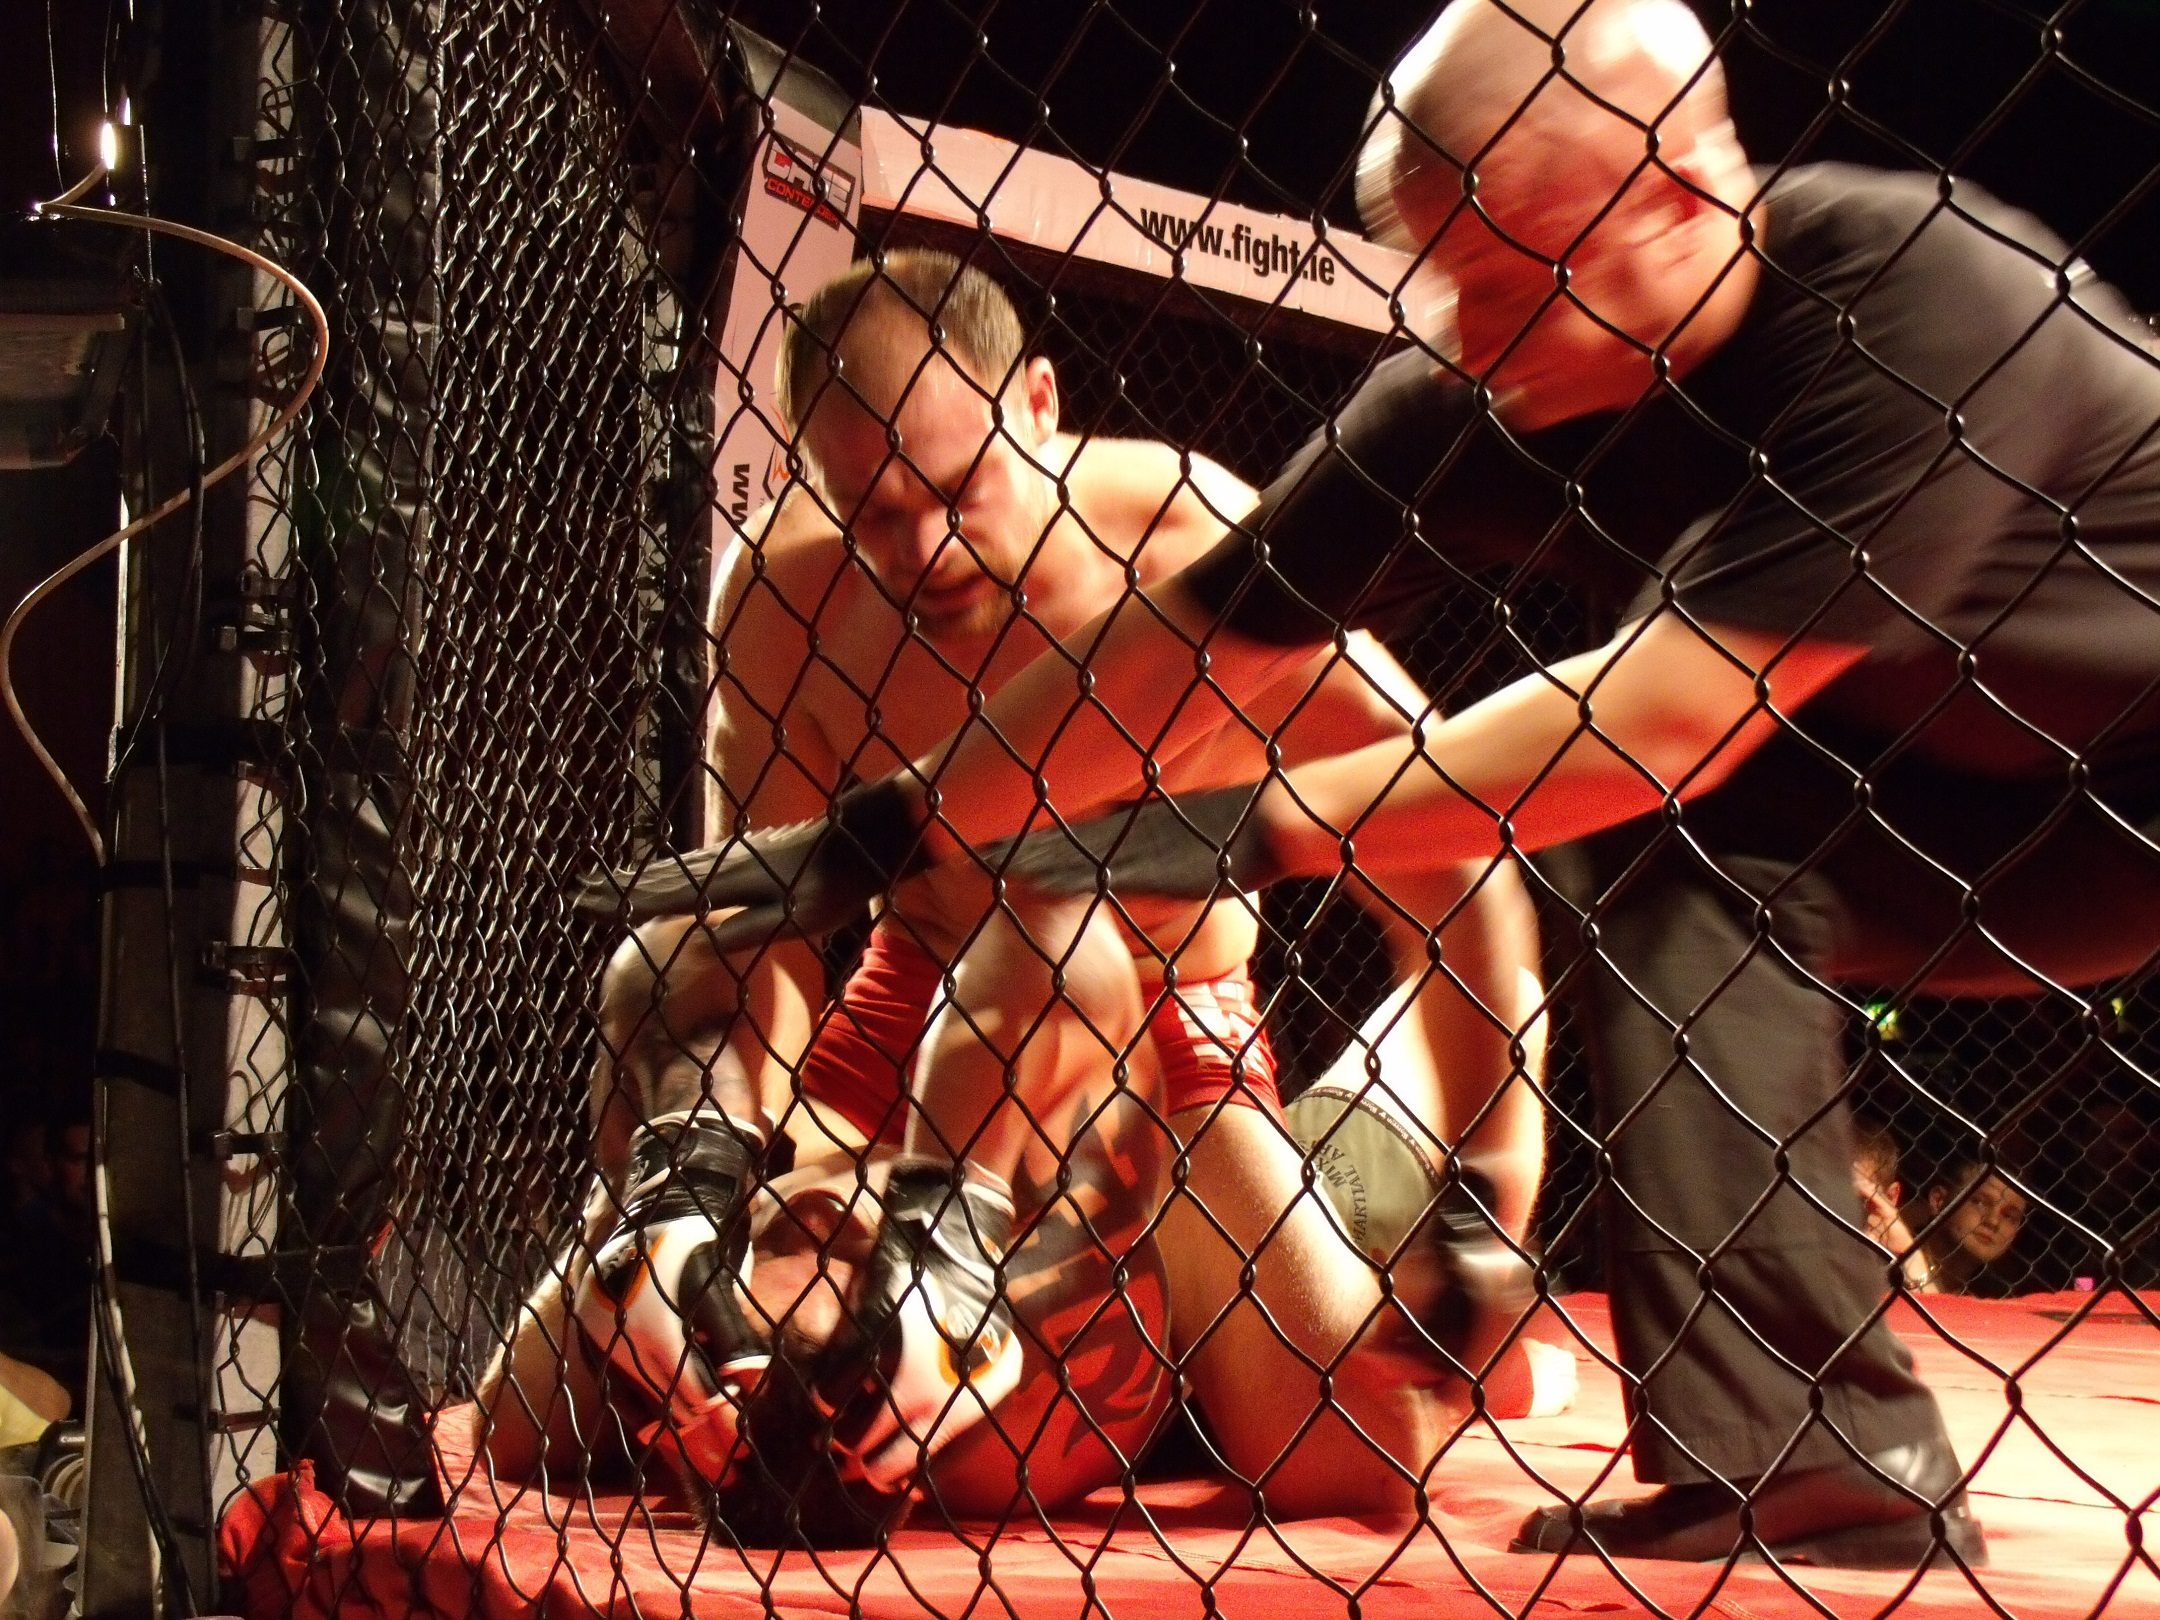 Referee stoppage, Pendred retains Title